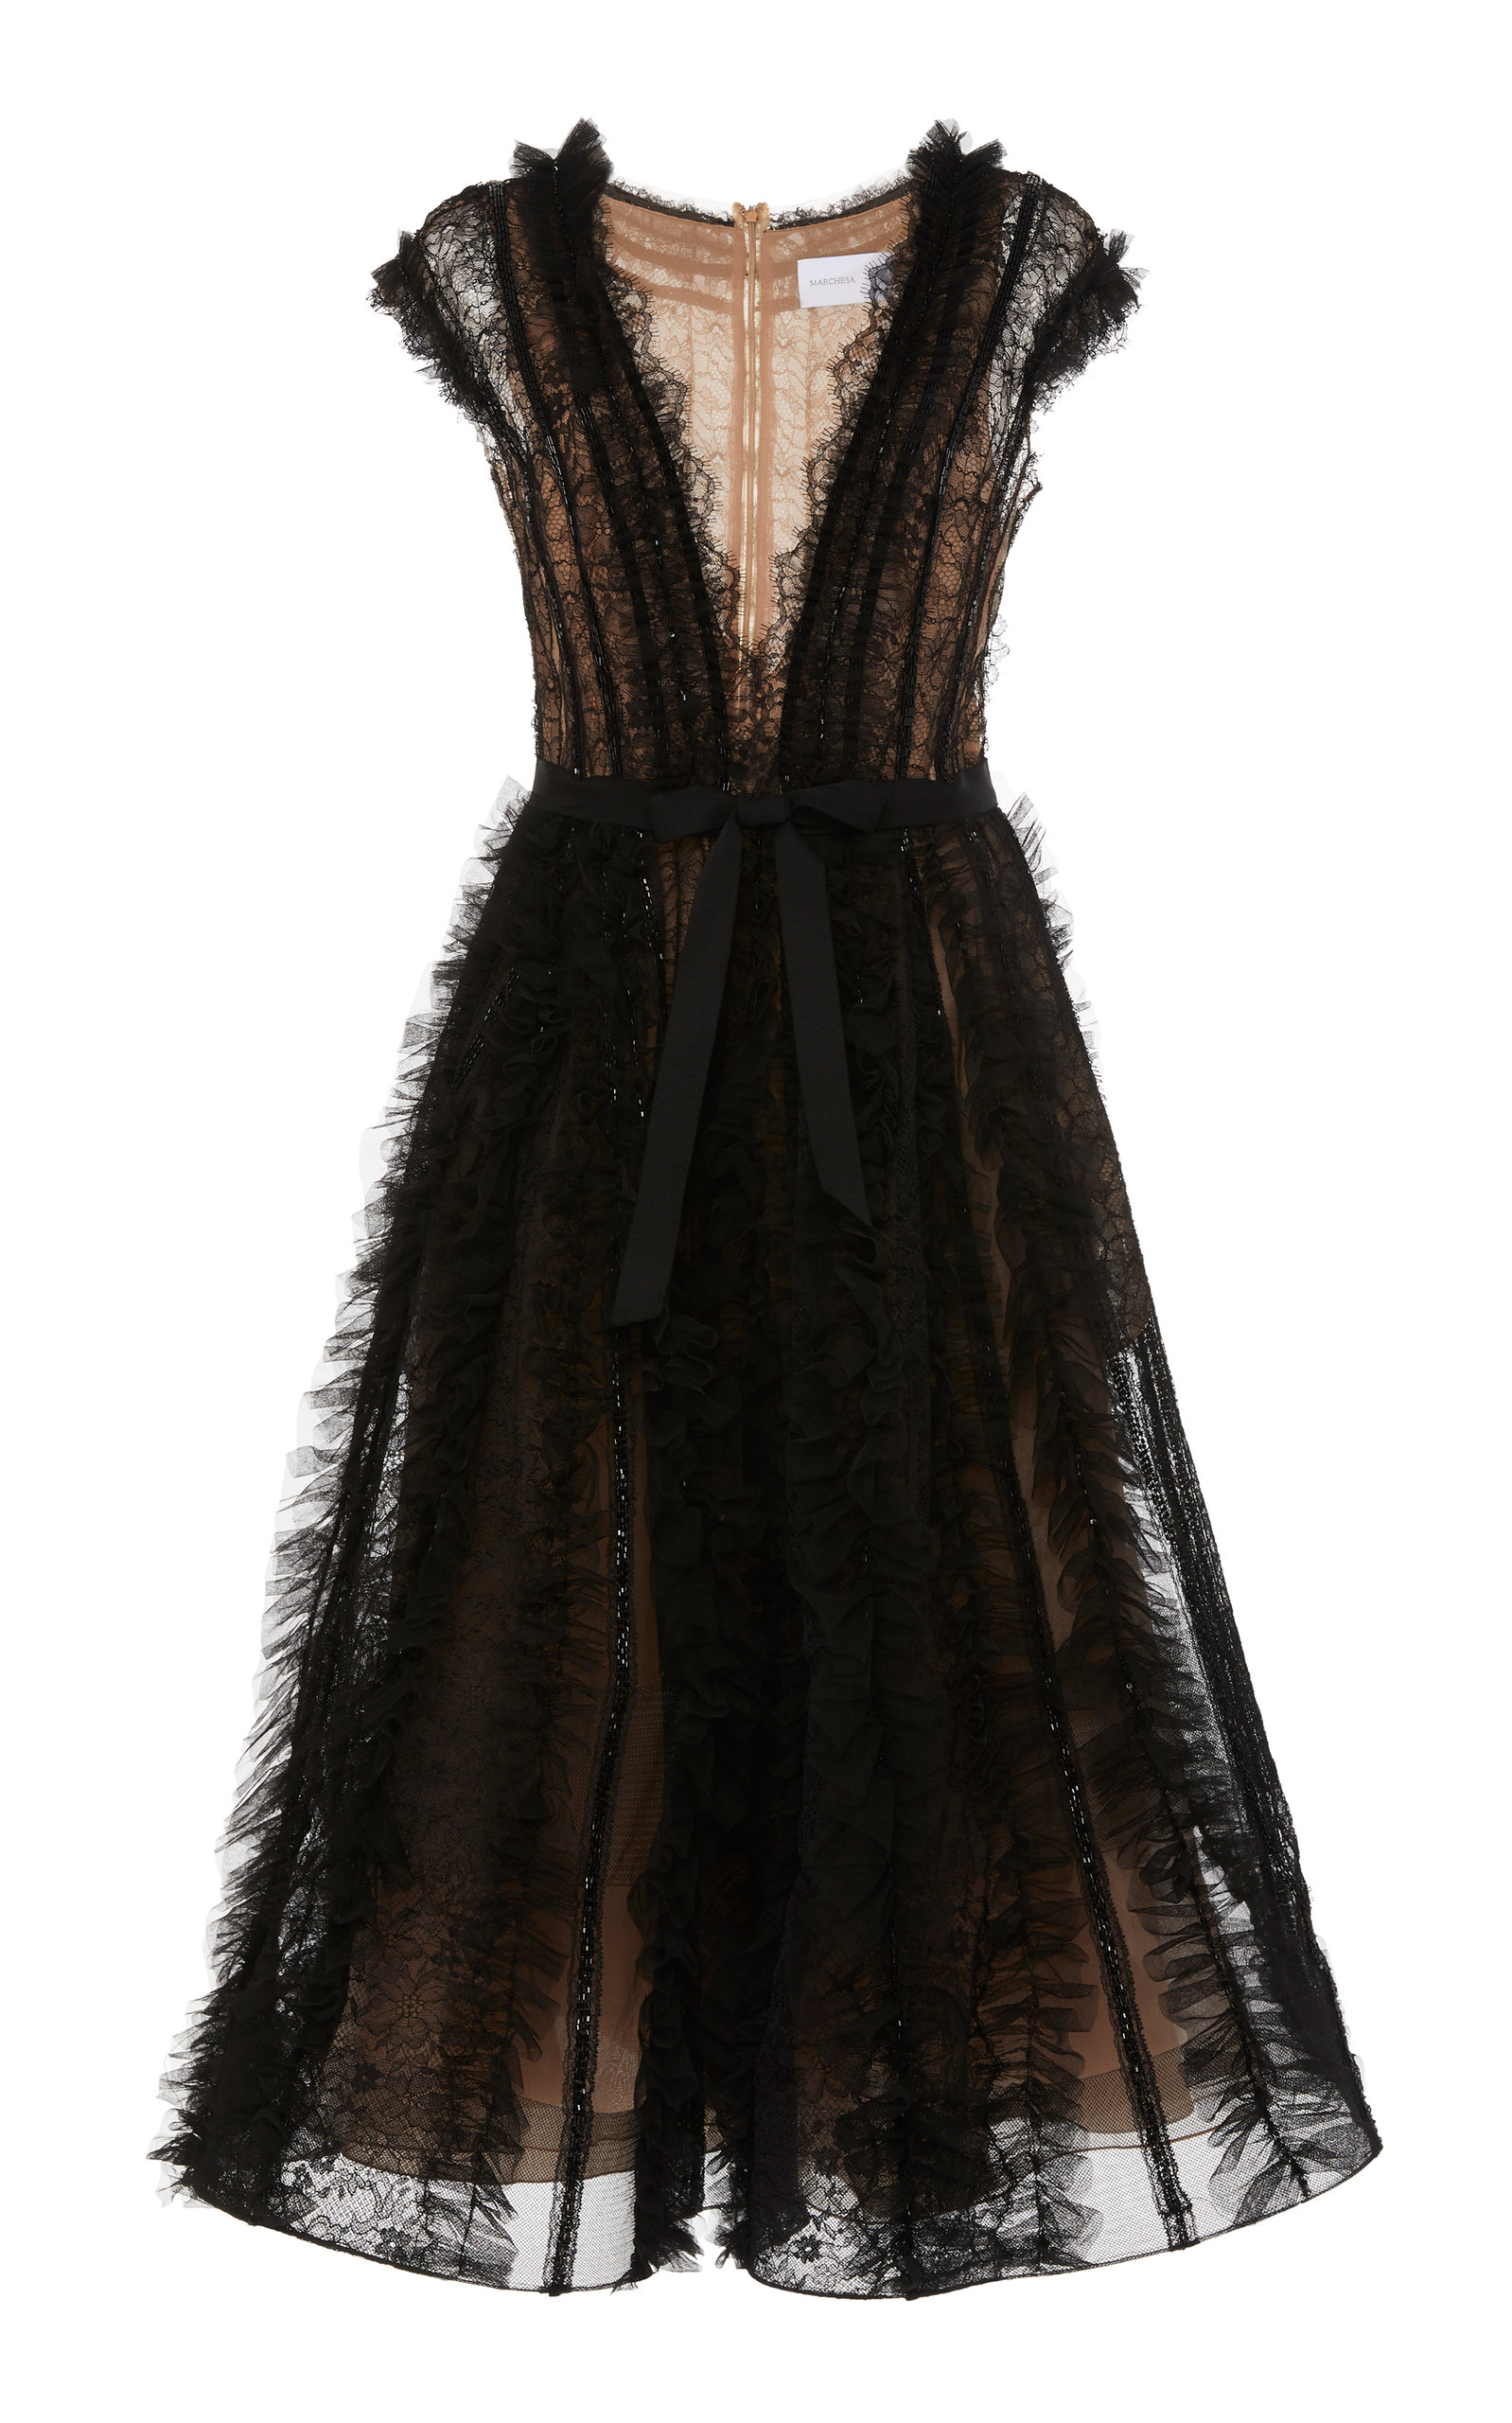 4c919e42f19 Marchesa Lace Tulle V-Neck Cocktail Dress In Black